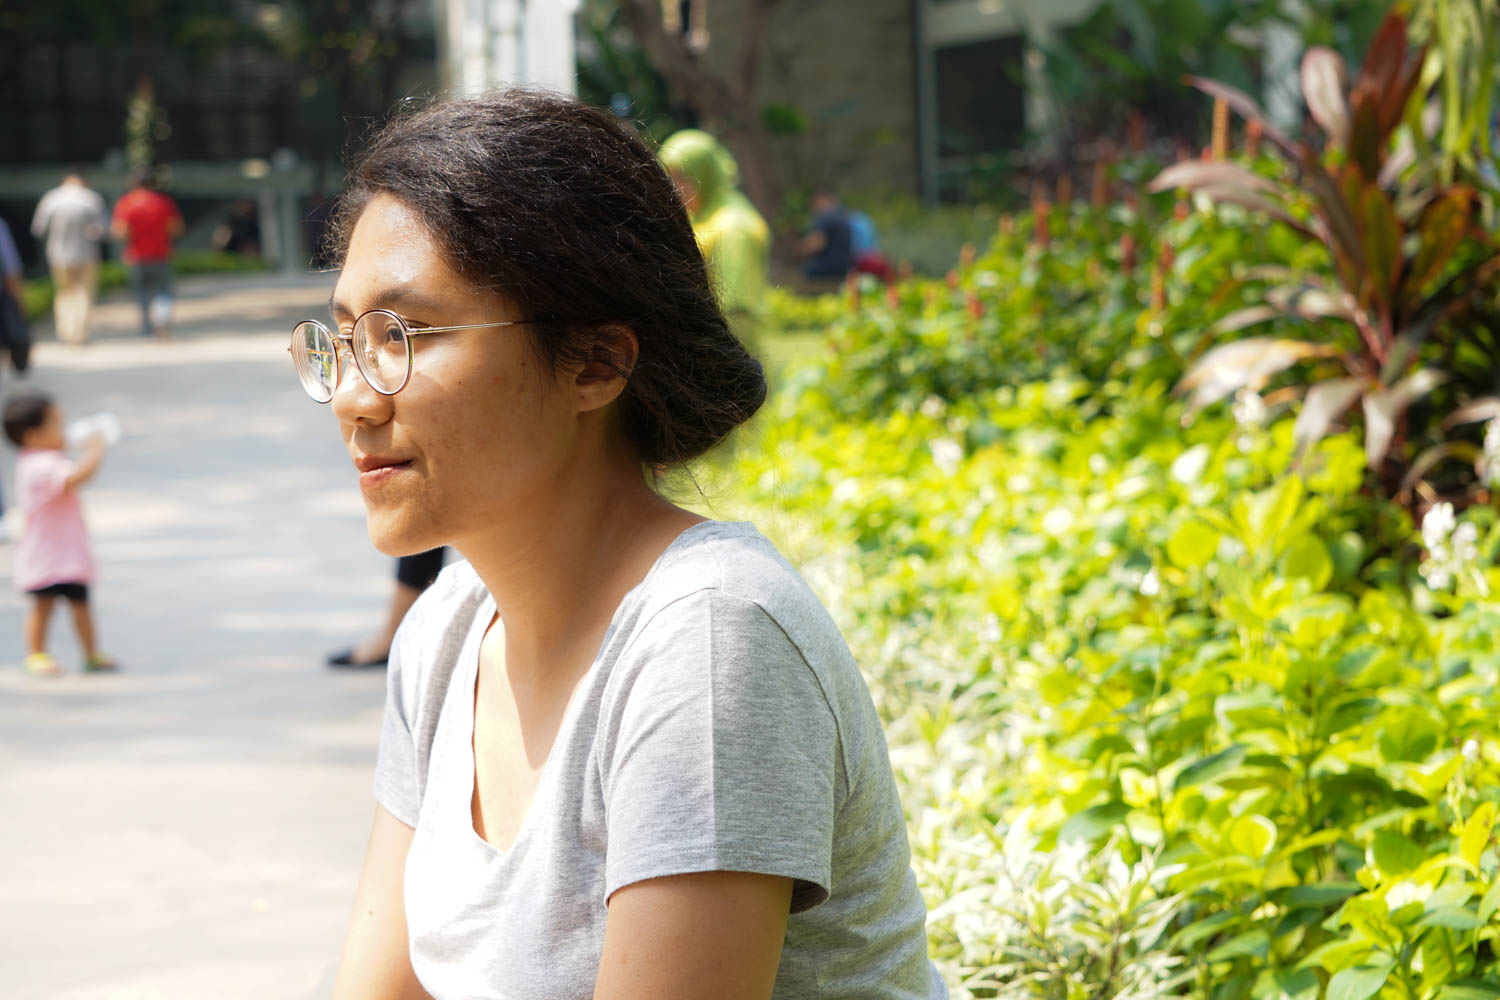 Indonesian women in a bun looking into the distance